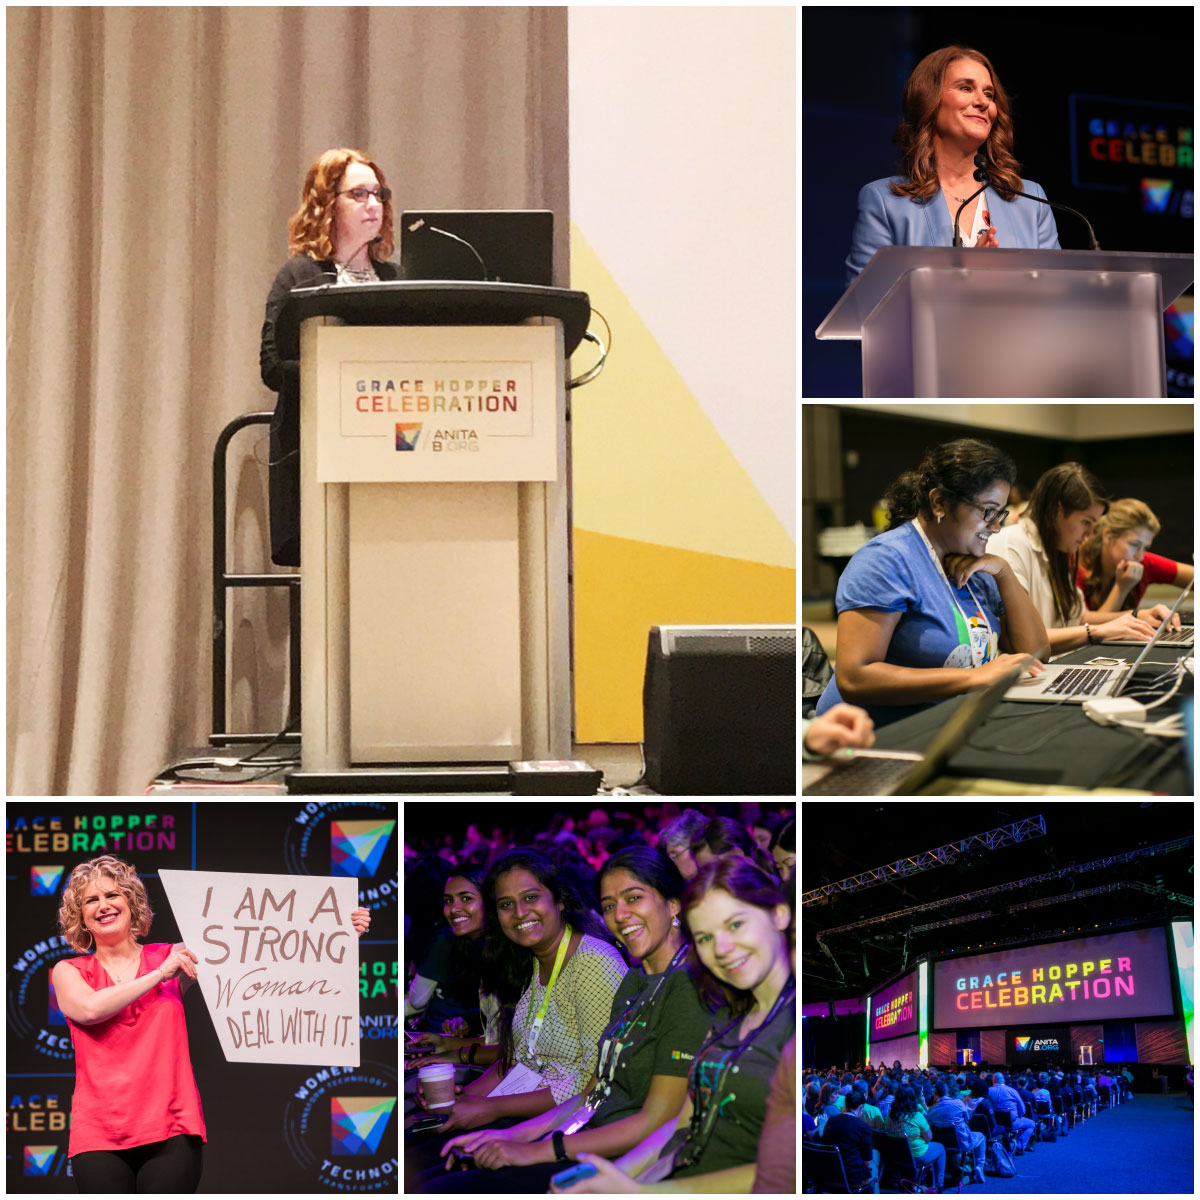 Photos from Grace Hopper Conference 2017